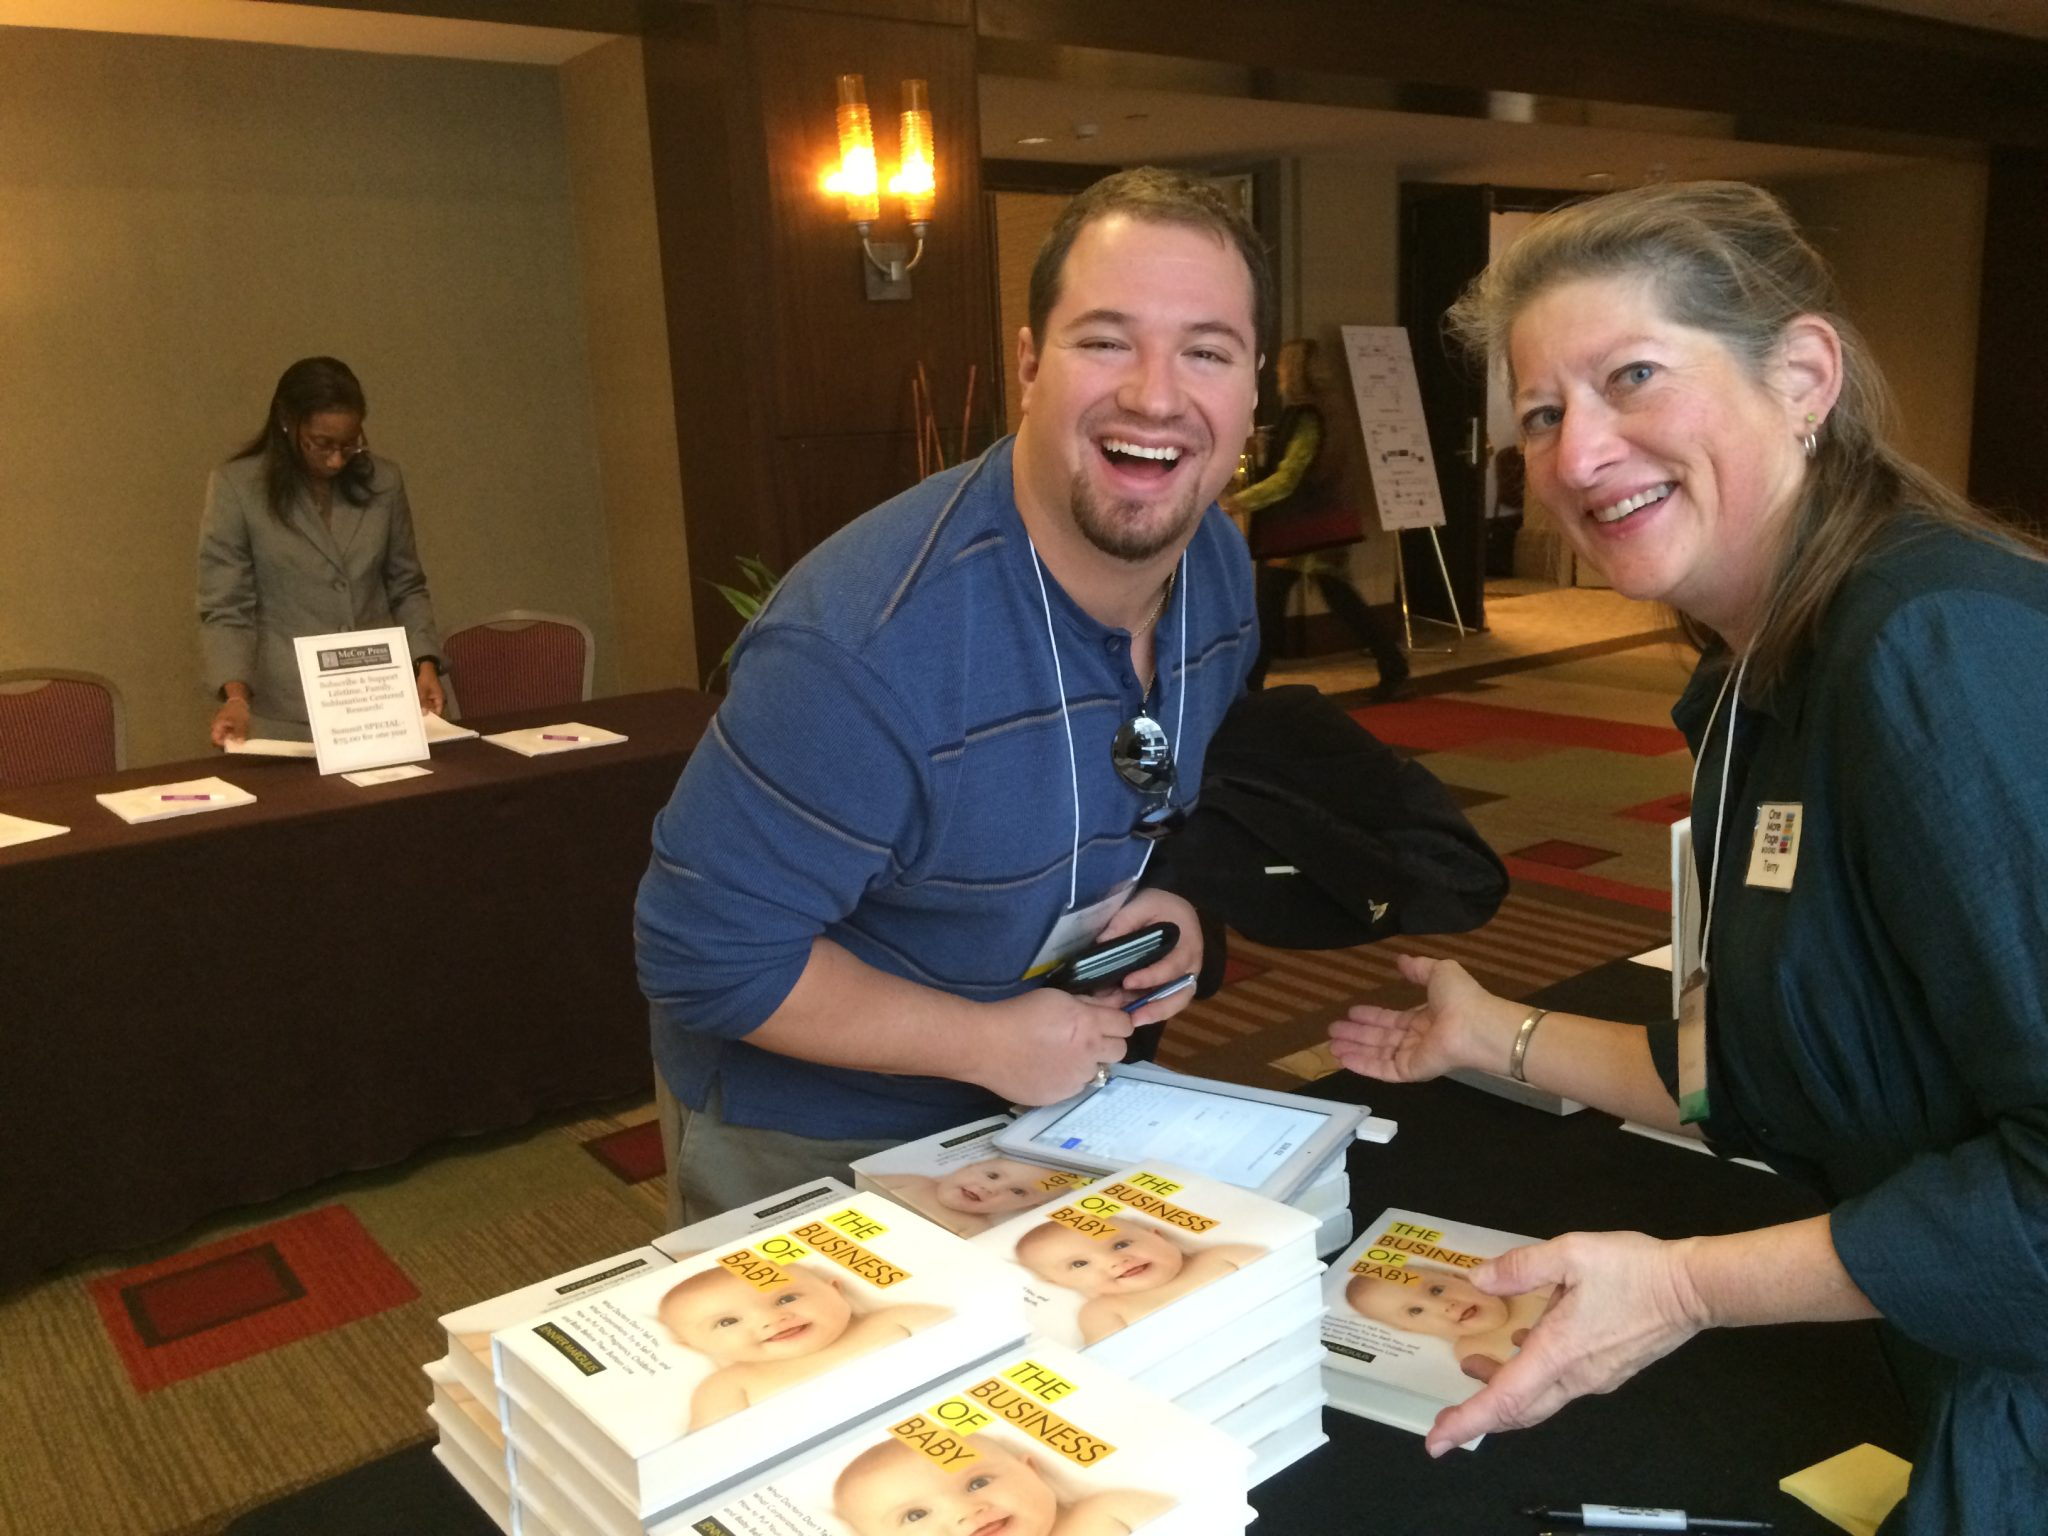 5 unexpected lessons from a chiropractic wellness conference. Via JenniferMargulis.net